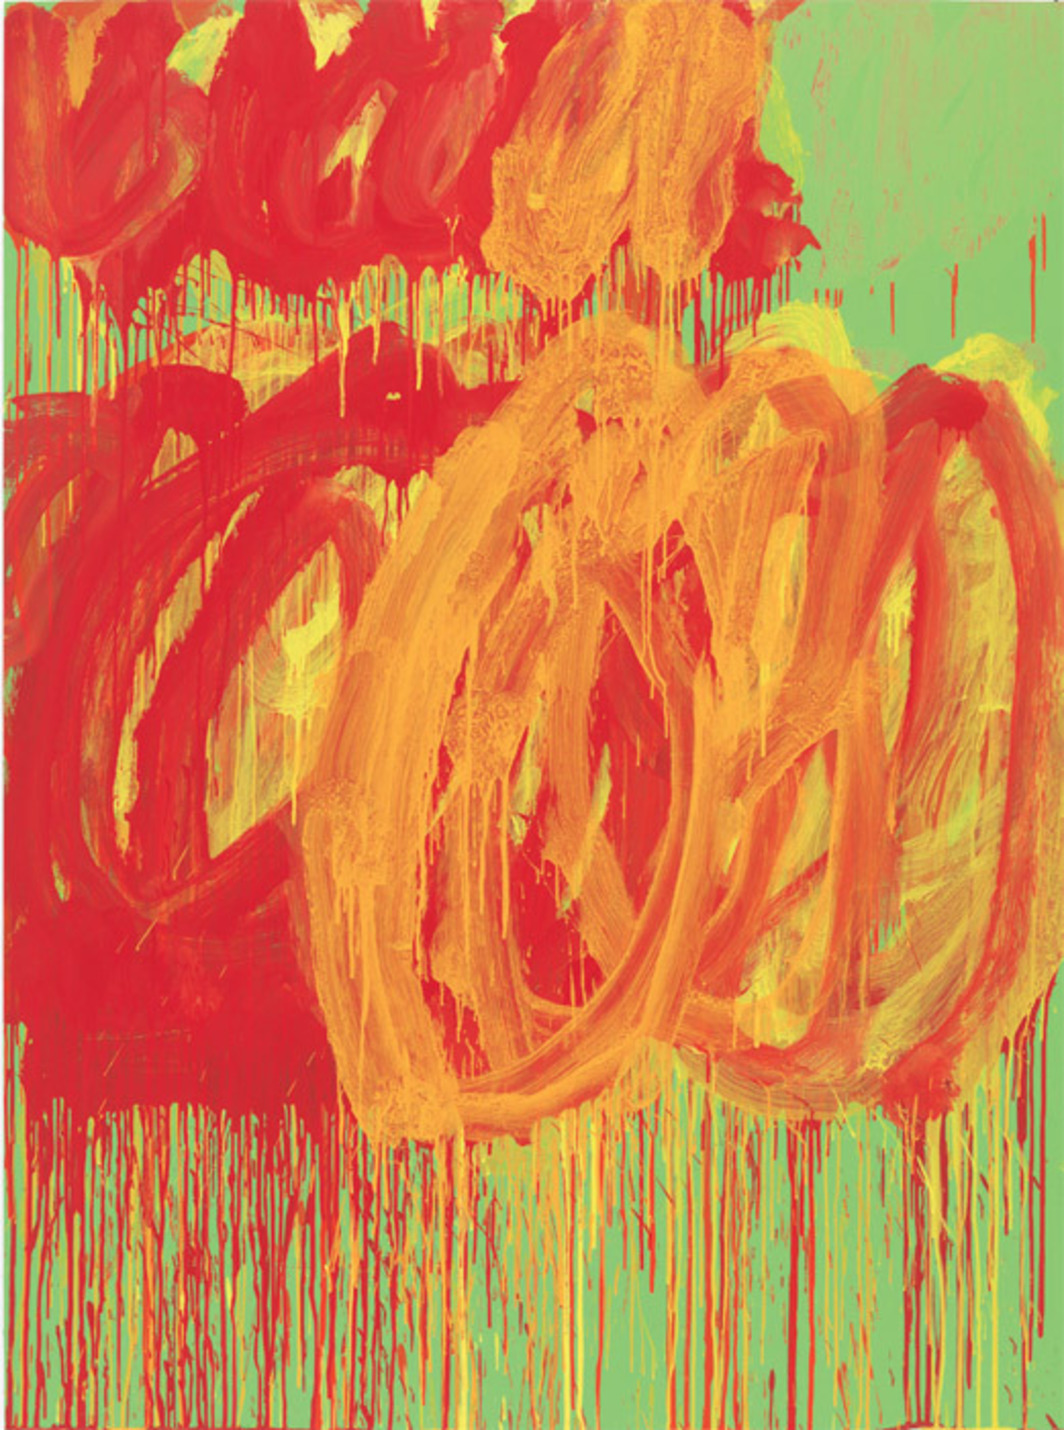 "Cy Twombly, Untitled (Camino Real), 2011, acrylic on plywood, 99 3/8 x 72 7/8""."